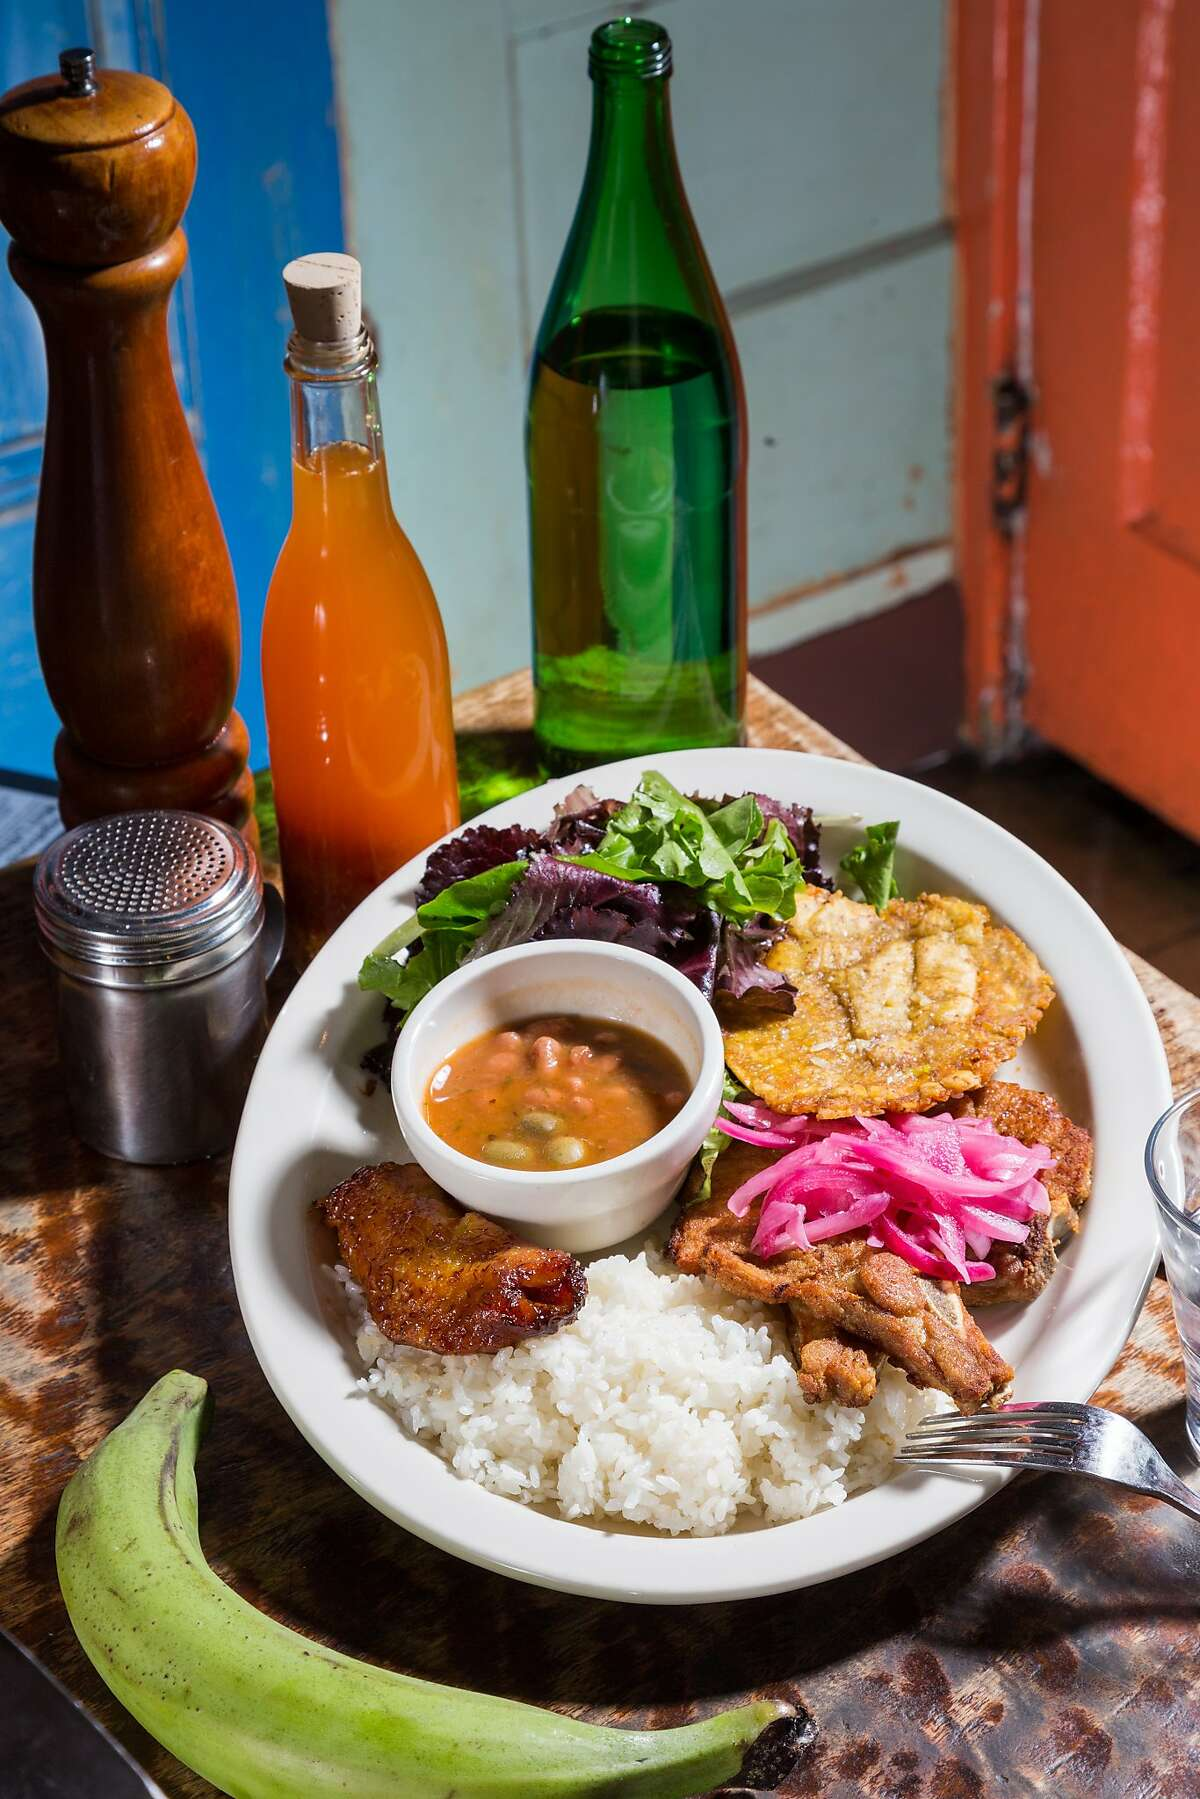 Puerto Rican food. If Marin's hugely popular Sol Food could open an S.F. outpost that would fulfill the need. Pictured: A plate of fried pork, plantains, tostones, rice and beans, and salad at Sol Food in San Rafael.